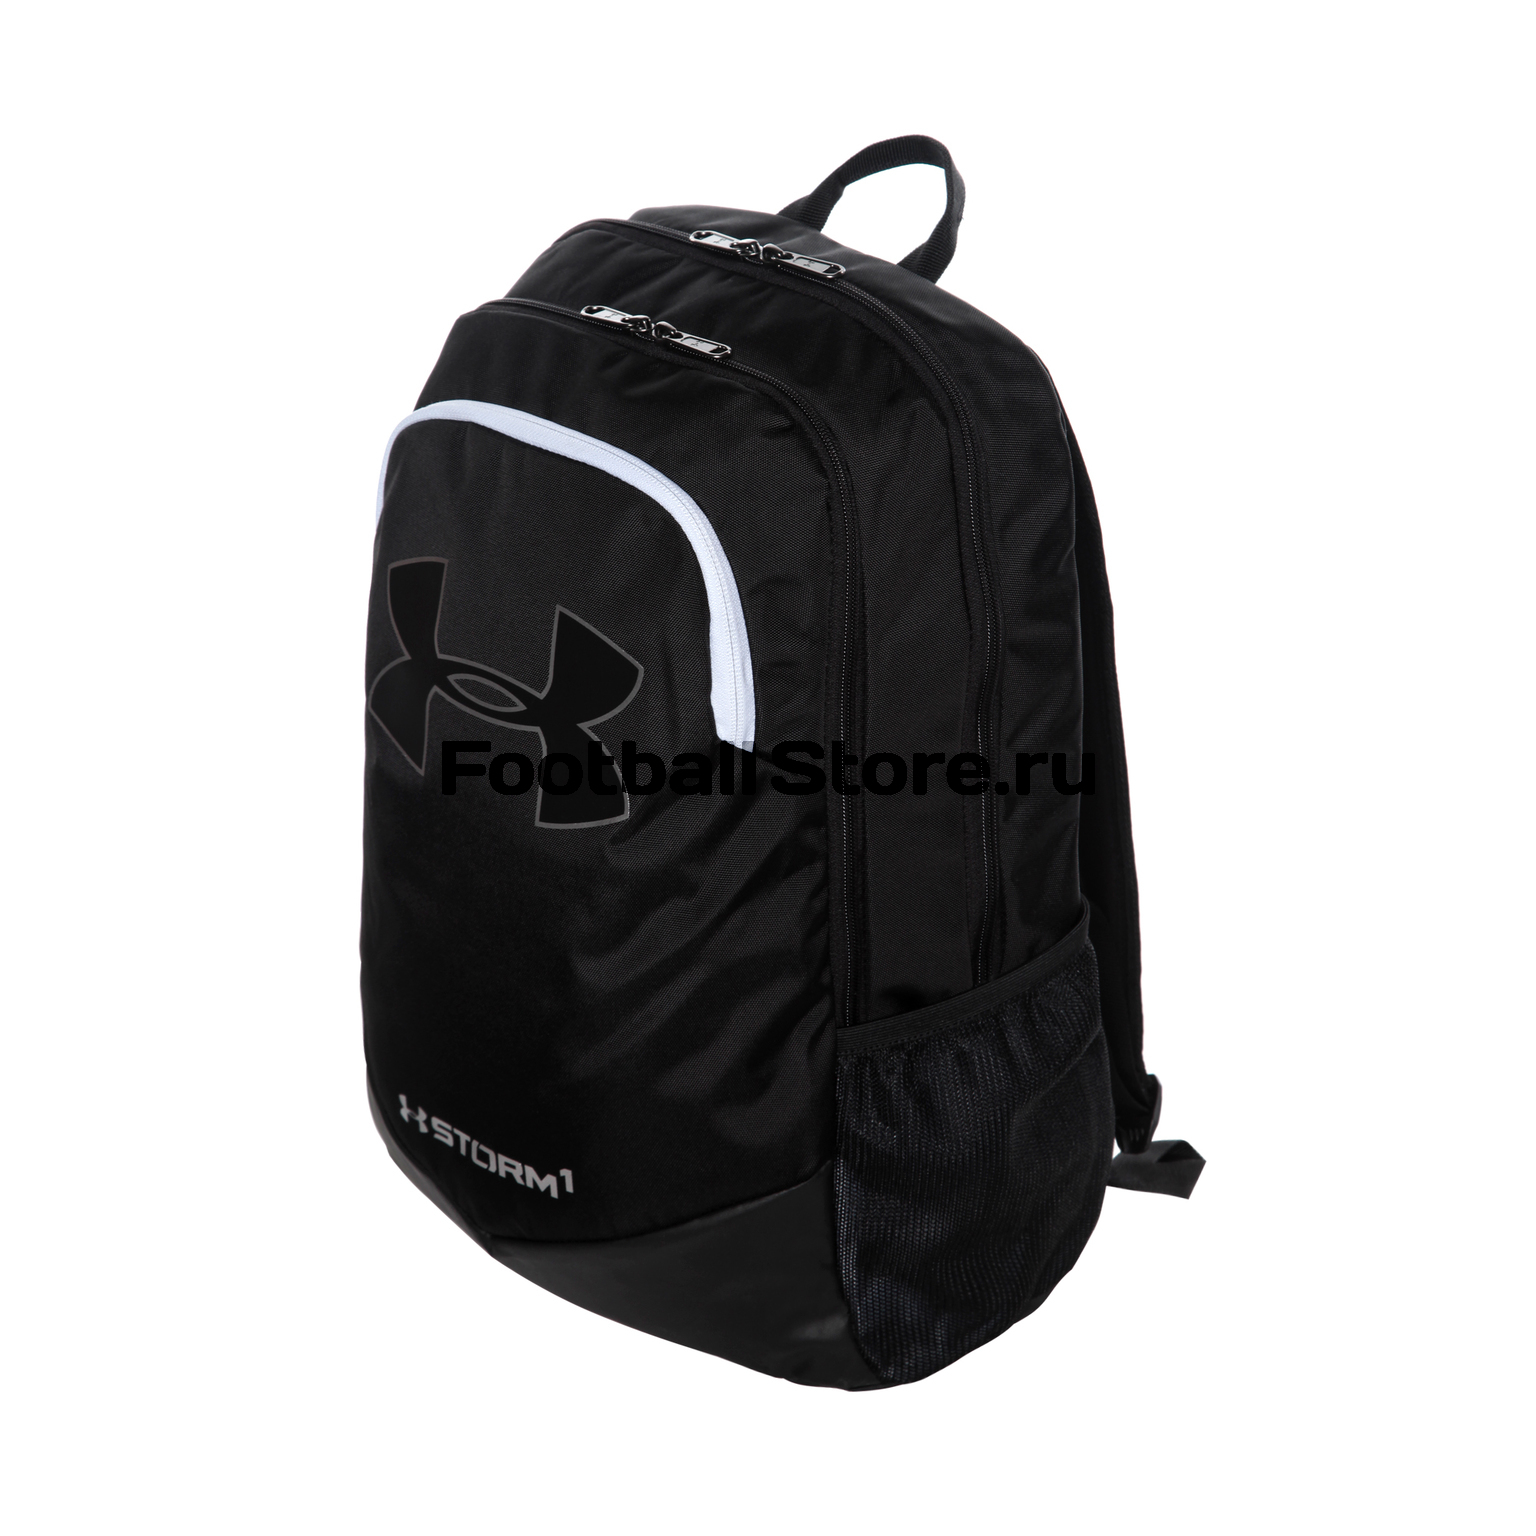 Рюкзак Under Armour Scrimmage Backpack 1277422-001